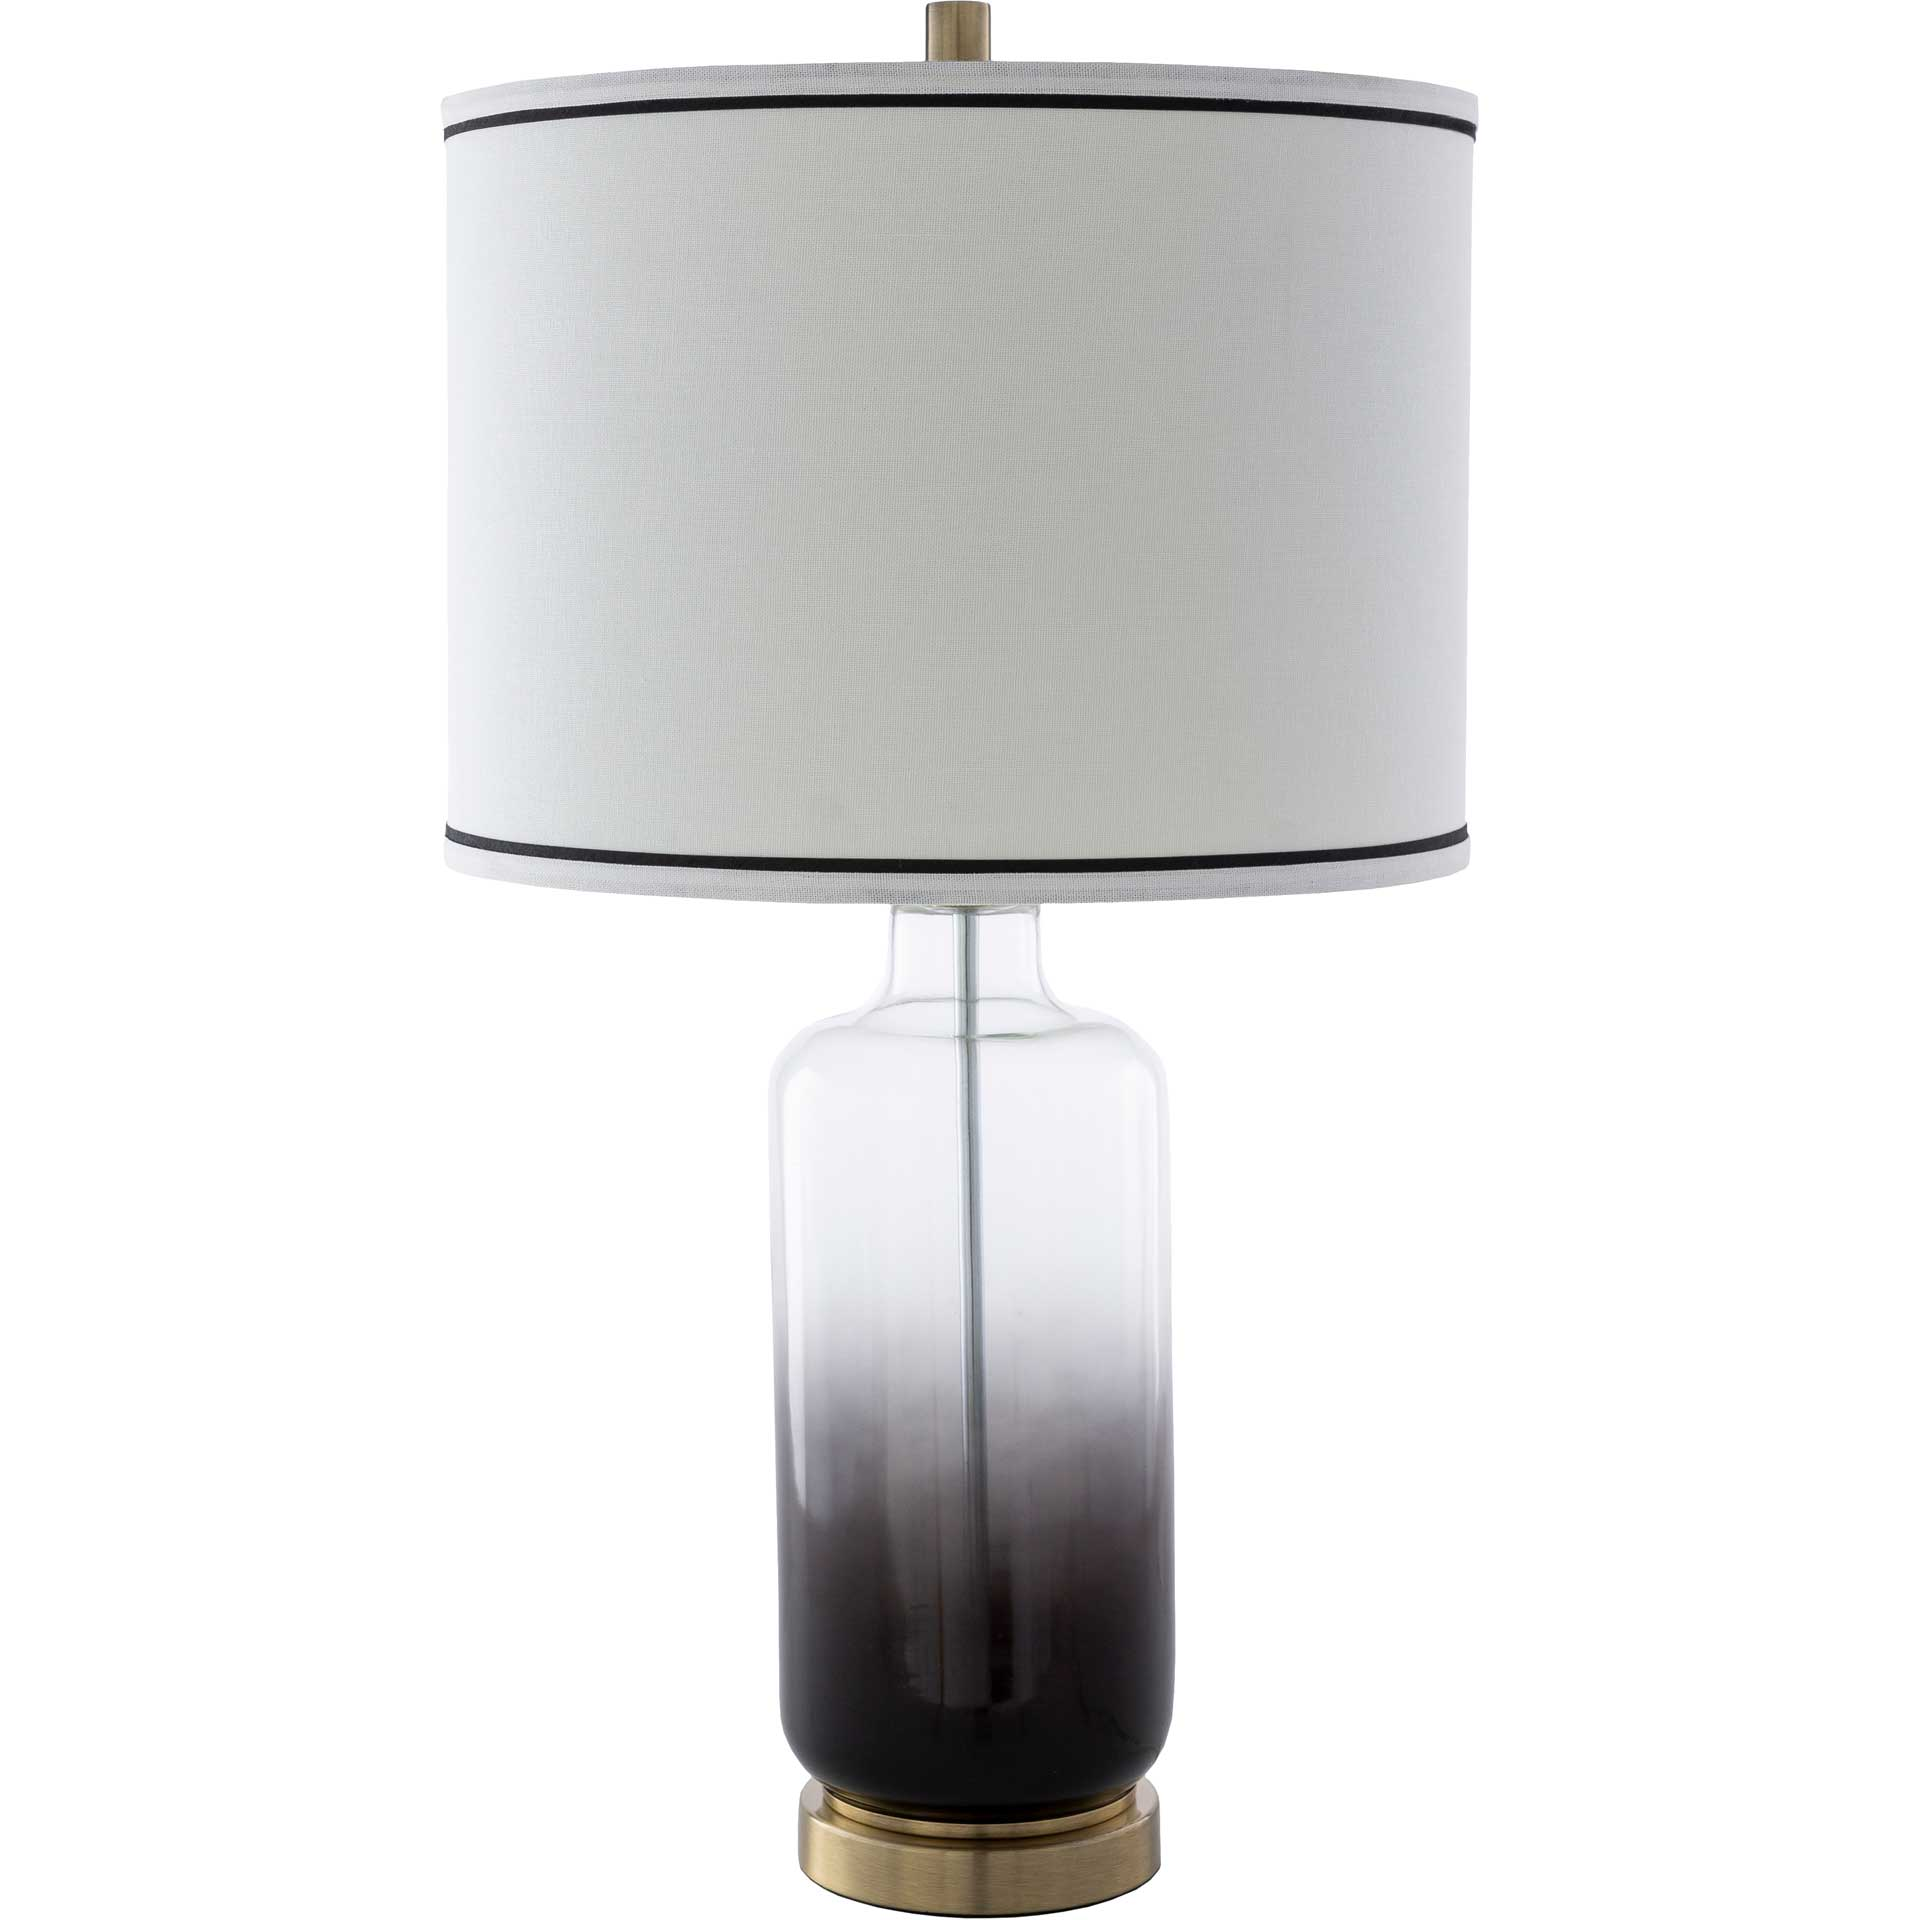 Ivaan Table Lamp White/Black/Clear